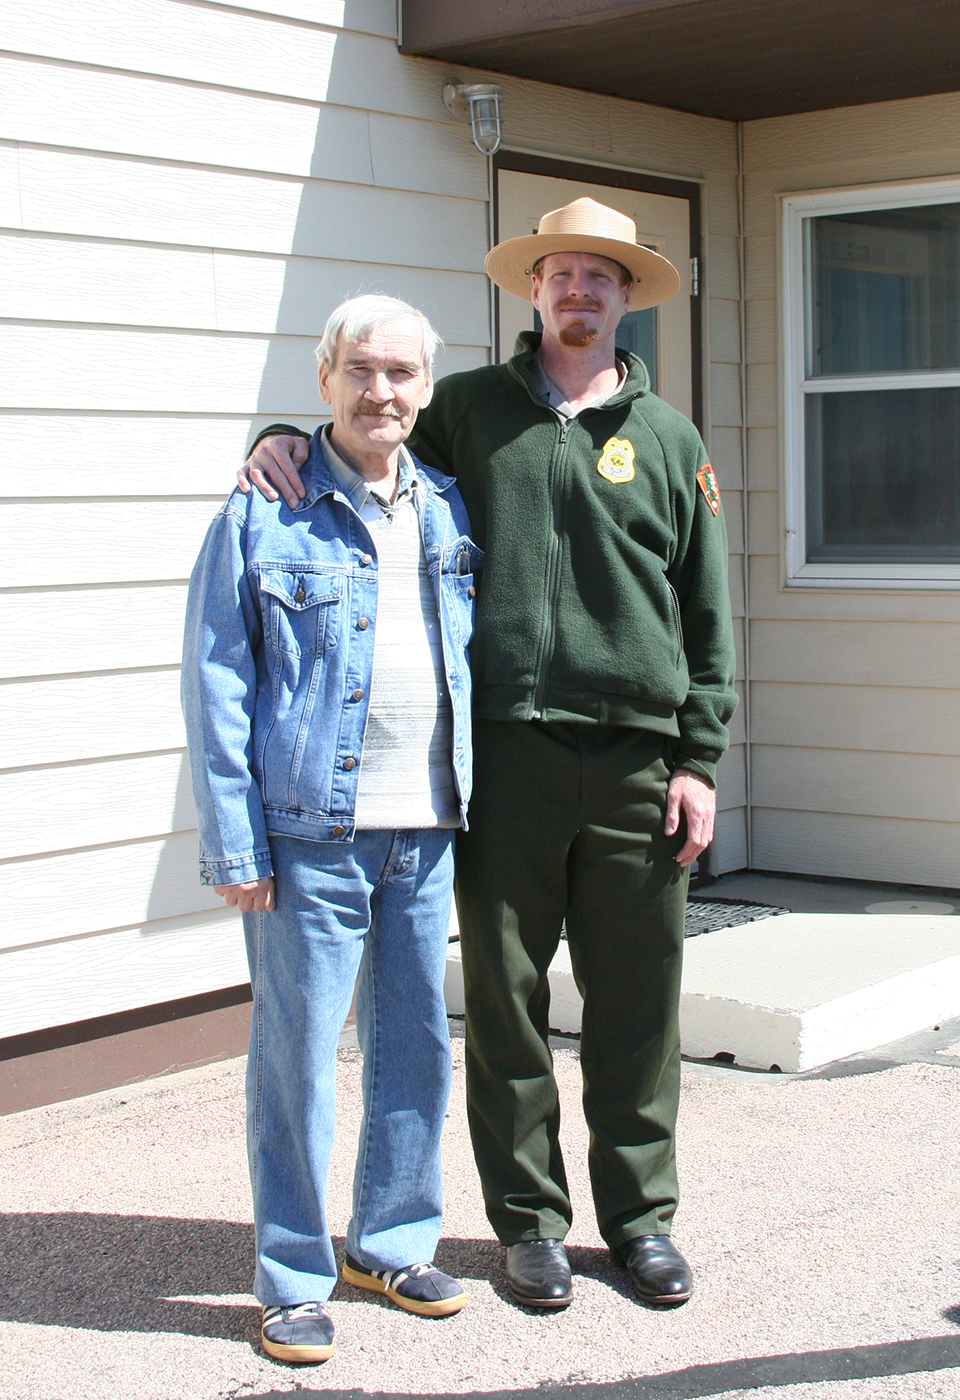 Elderly man and a park ranger stand outside a tan building.